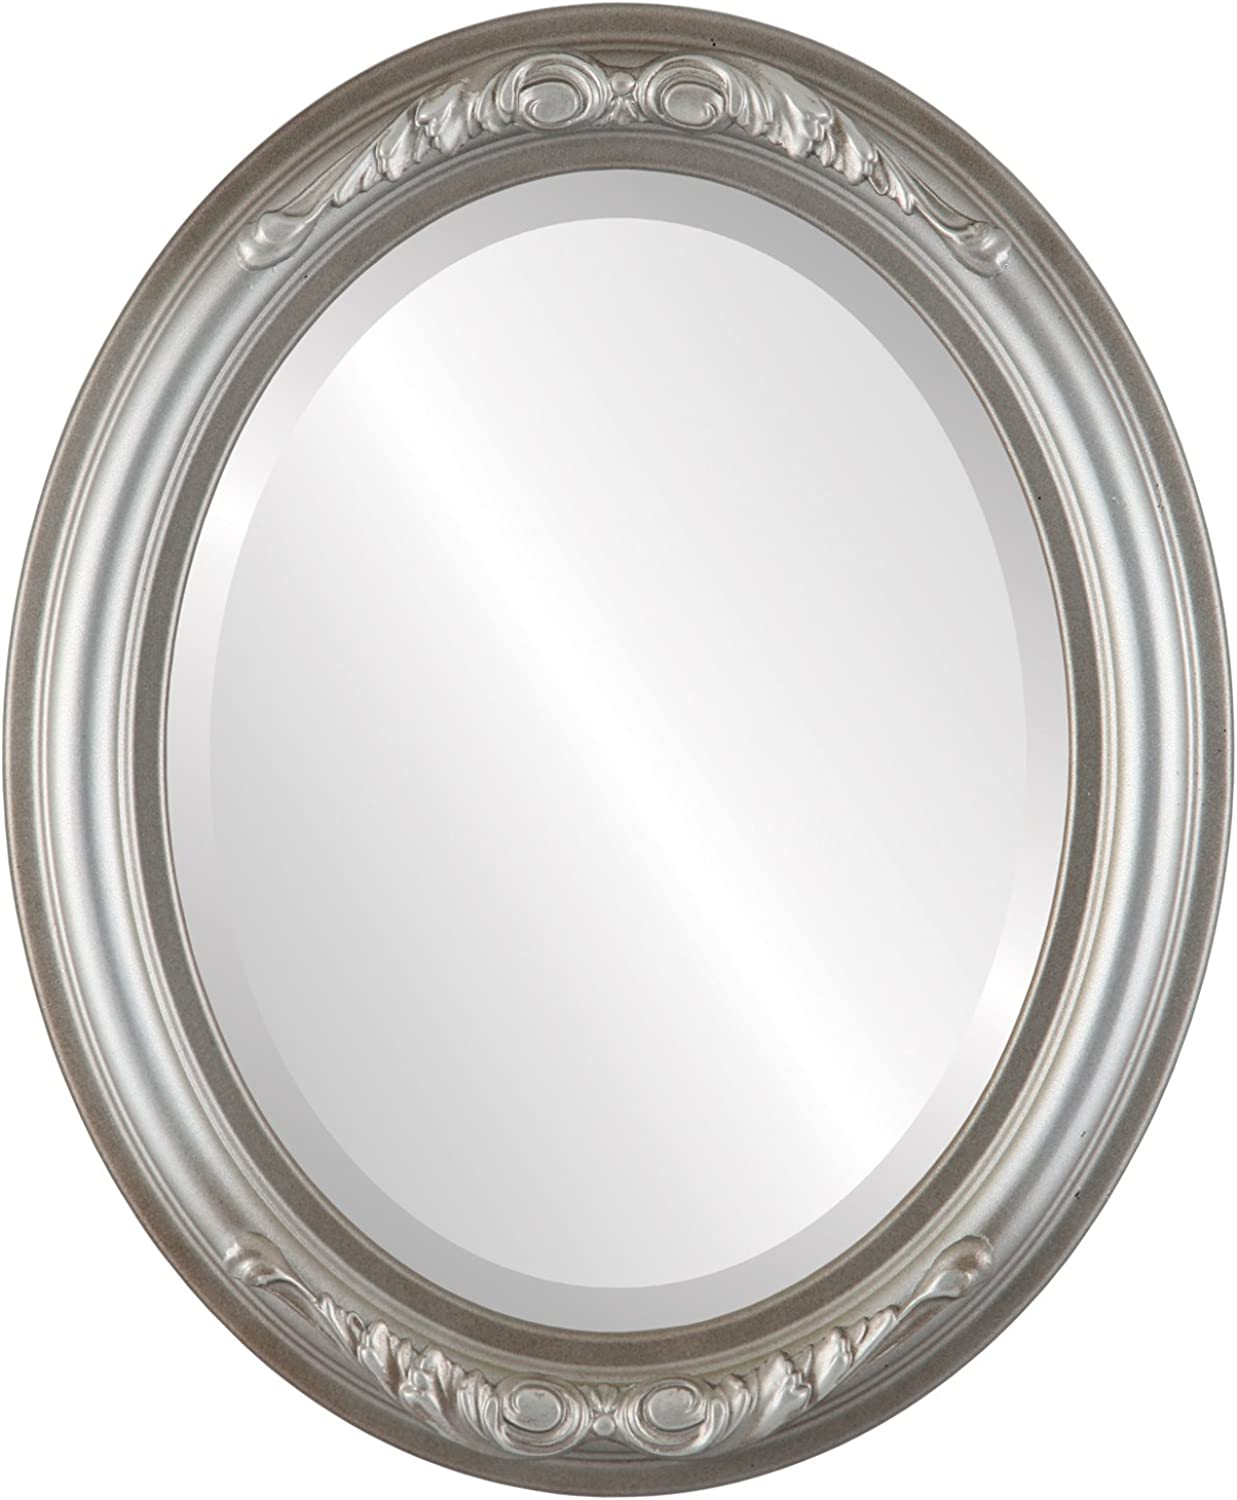 Florence Oval in Silver Shade